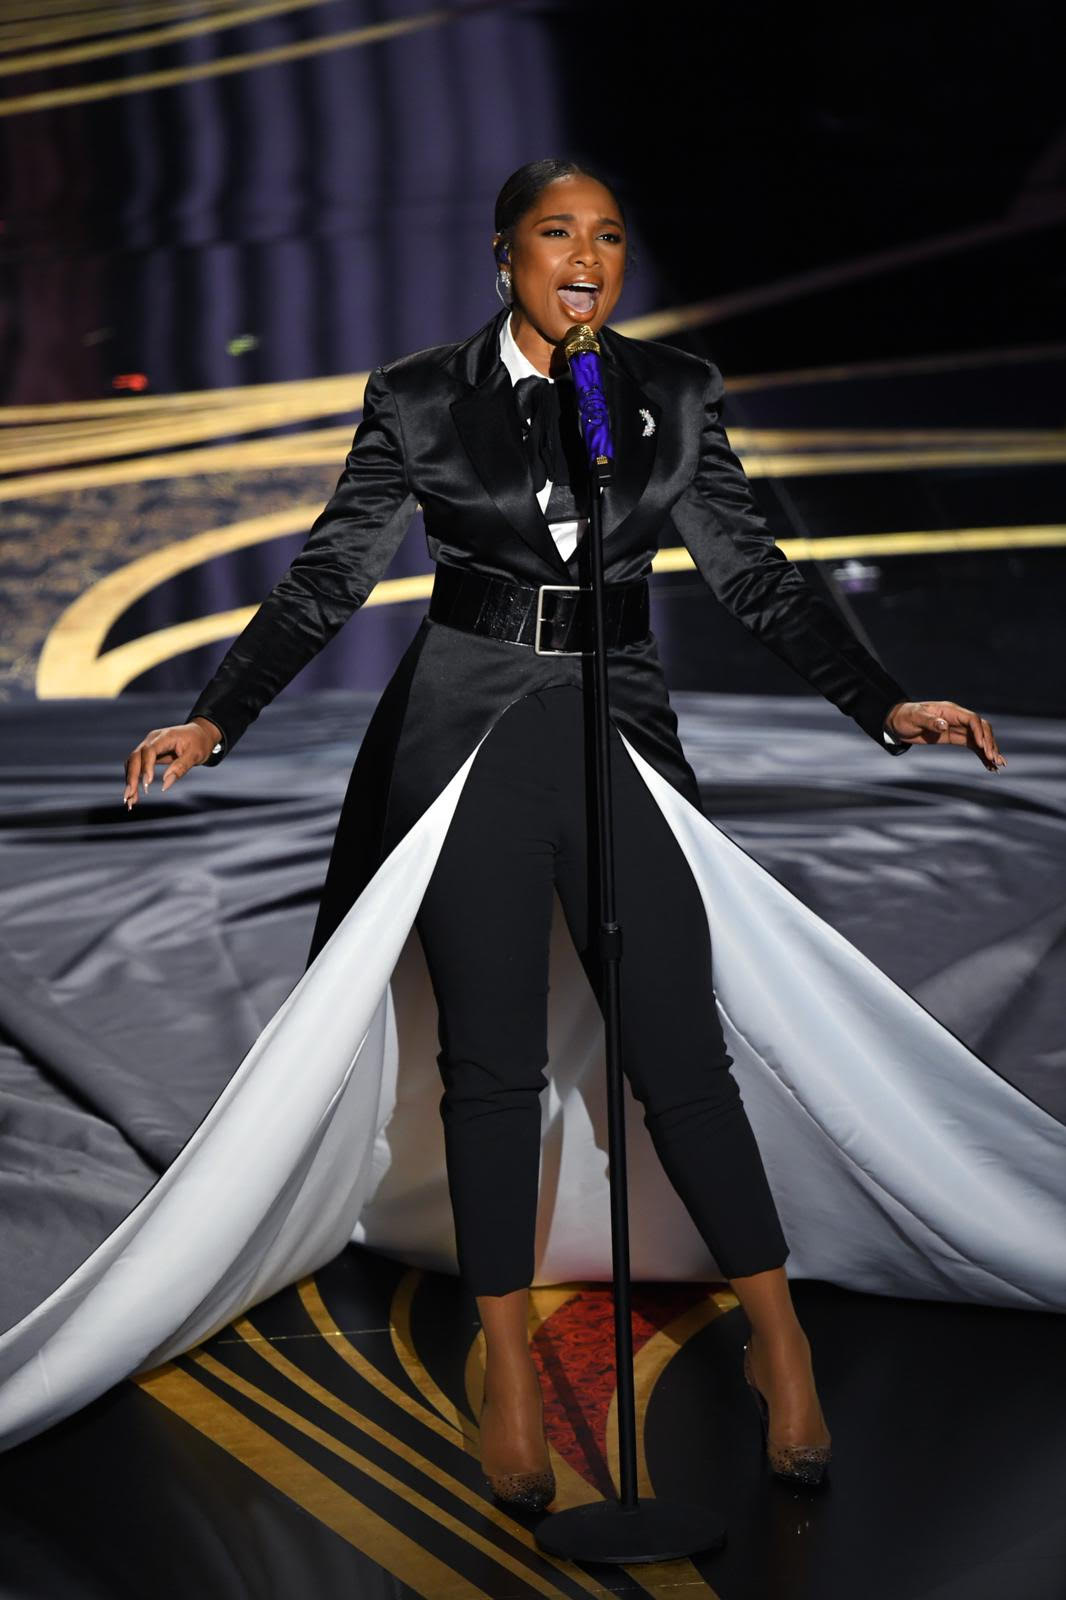 Jennifer Hudson performs at the 91st Annual Academy Awards